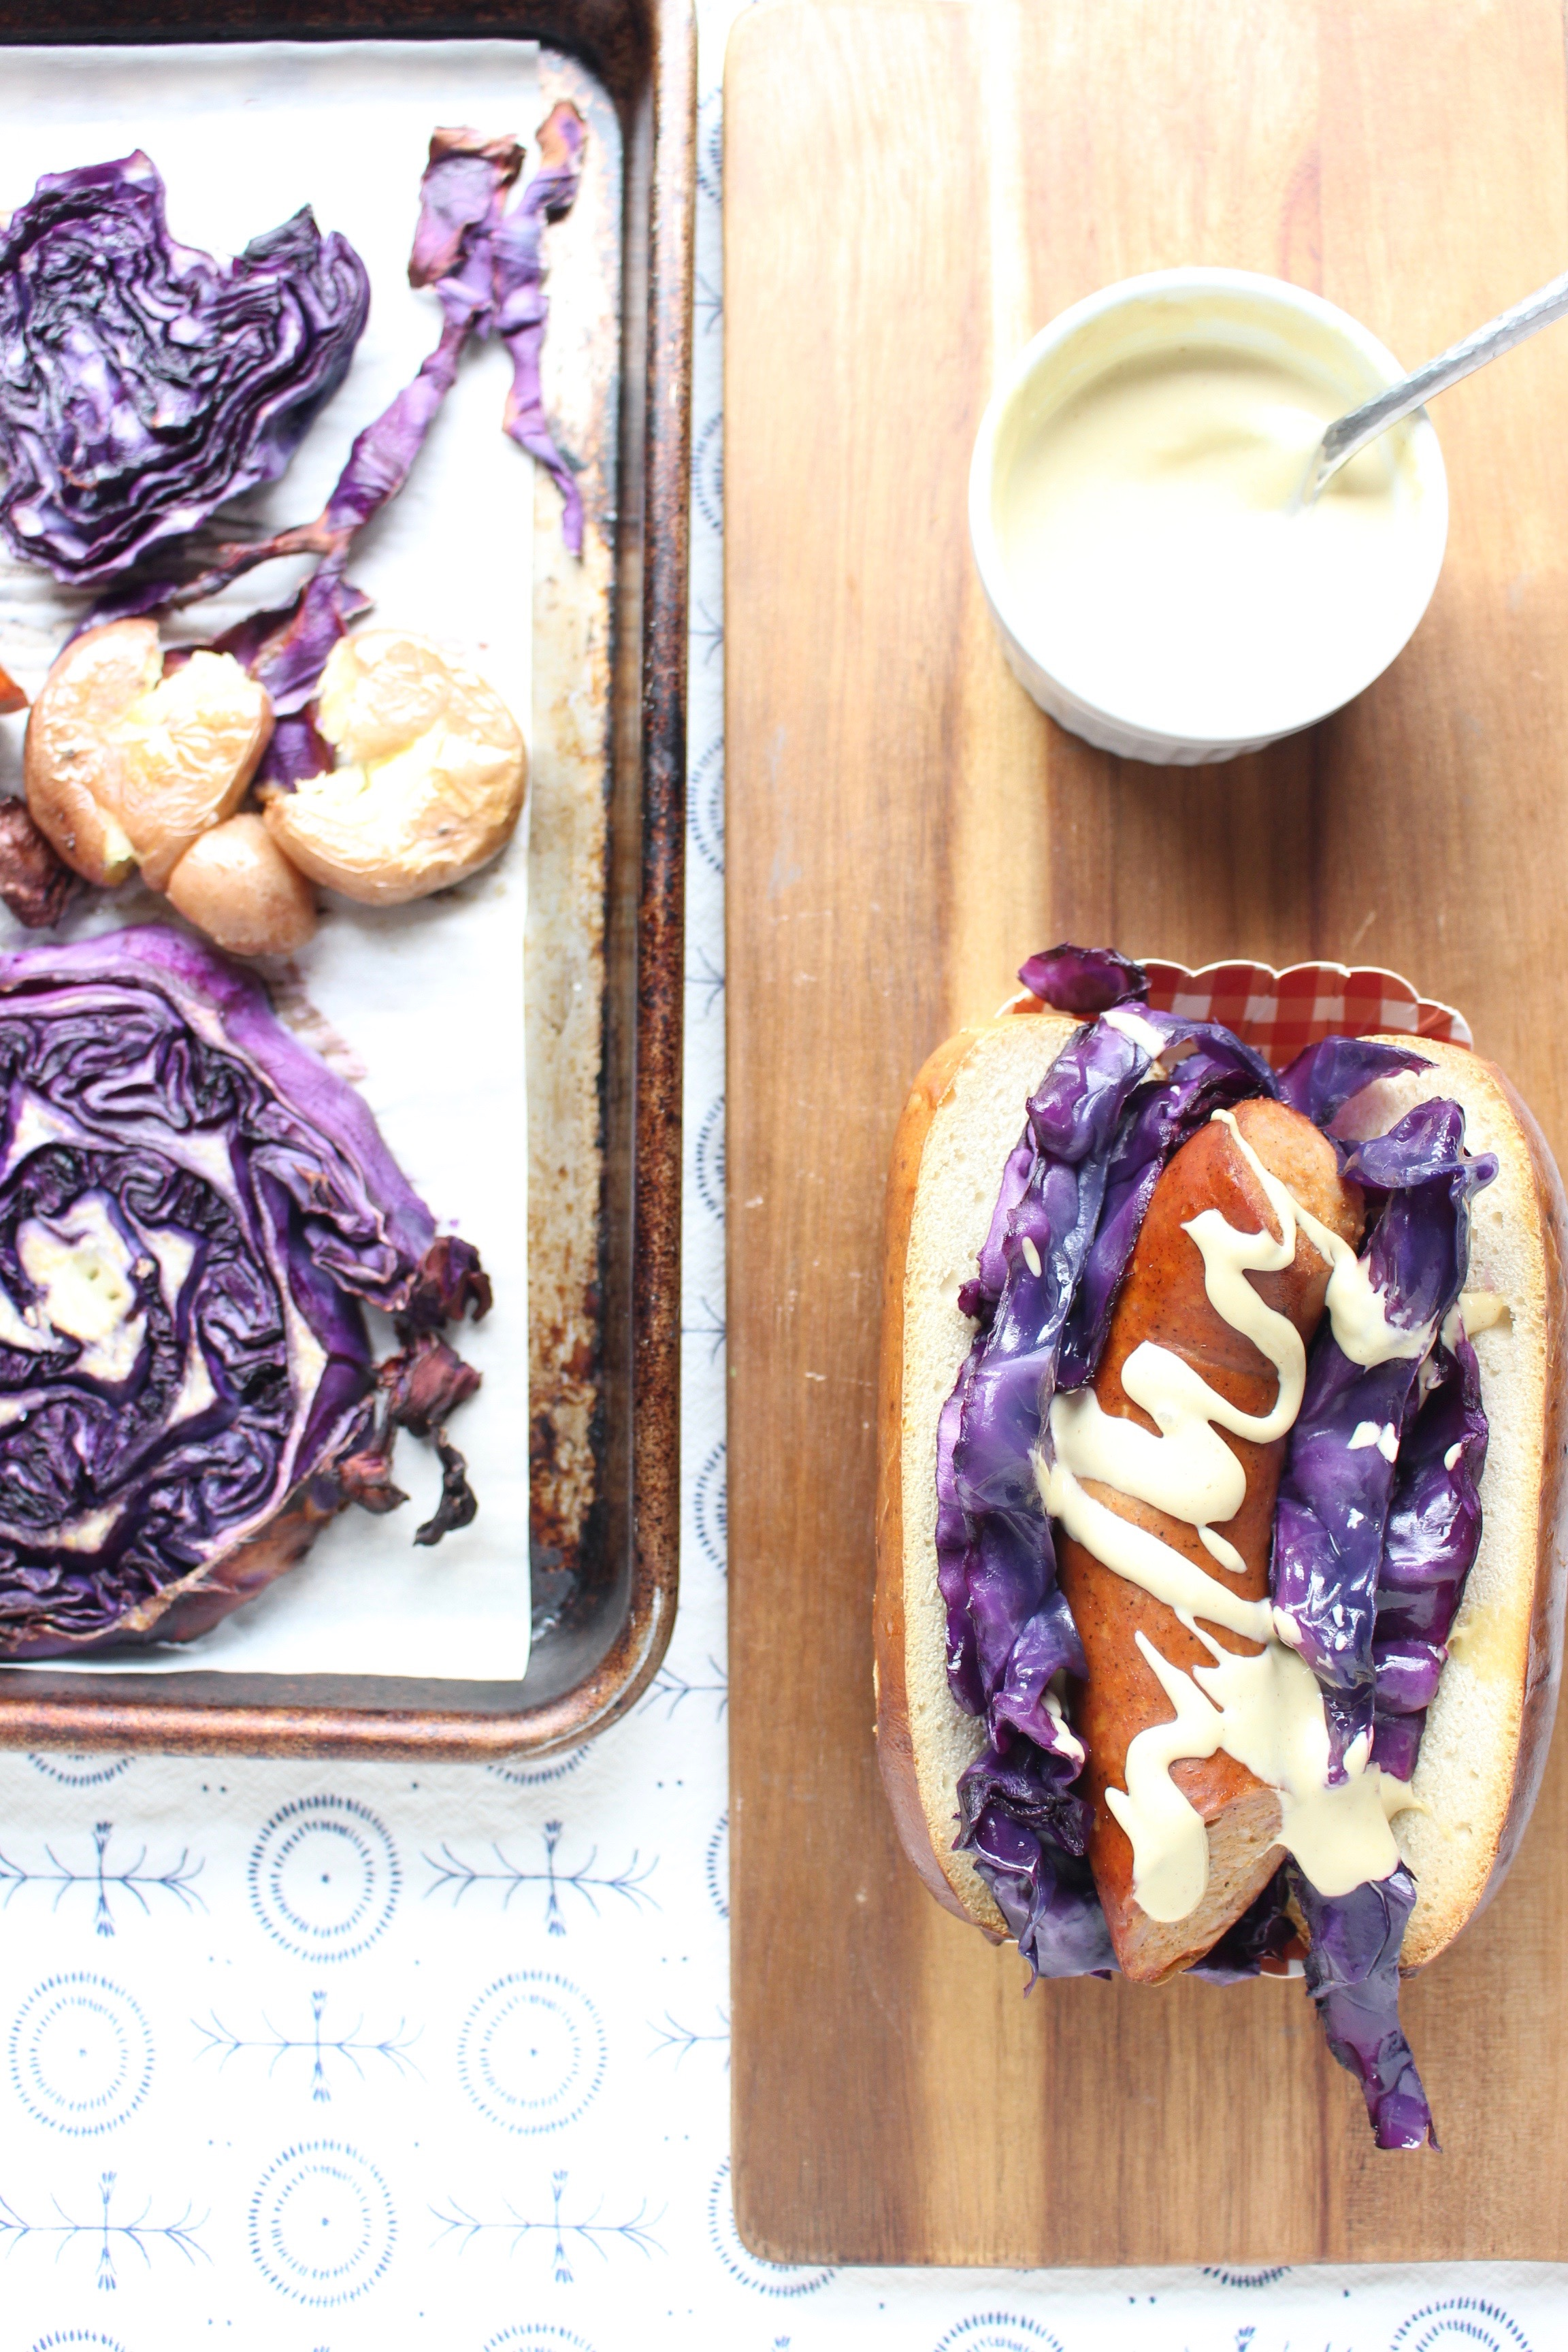 Sheet pan dinners are the fastest, easiest way to get dinner on the table and clean up done quickly. #meandthemoose #sheetpandinner #purplecabbage #sausage #potatoes #Oktoberfest